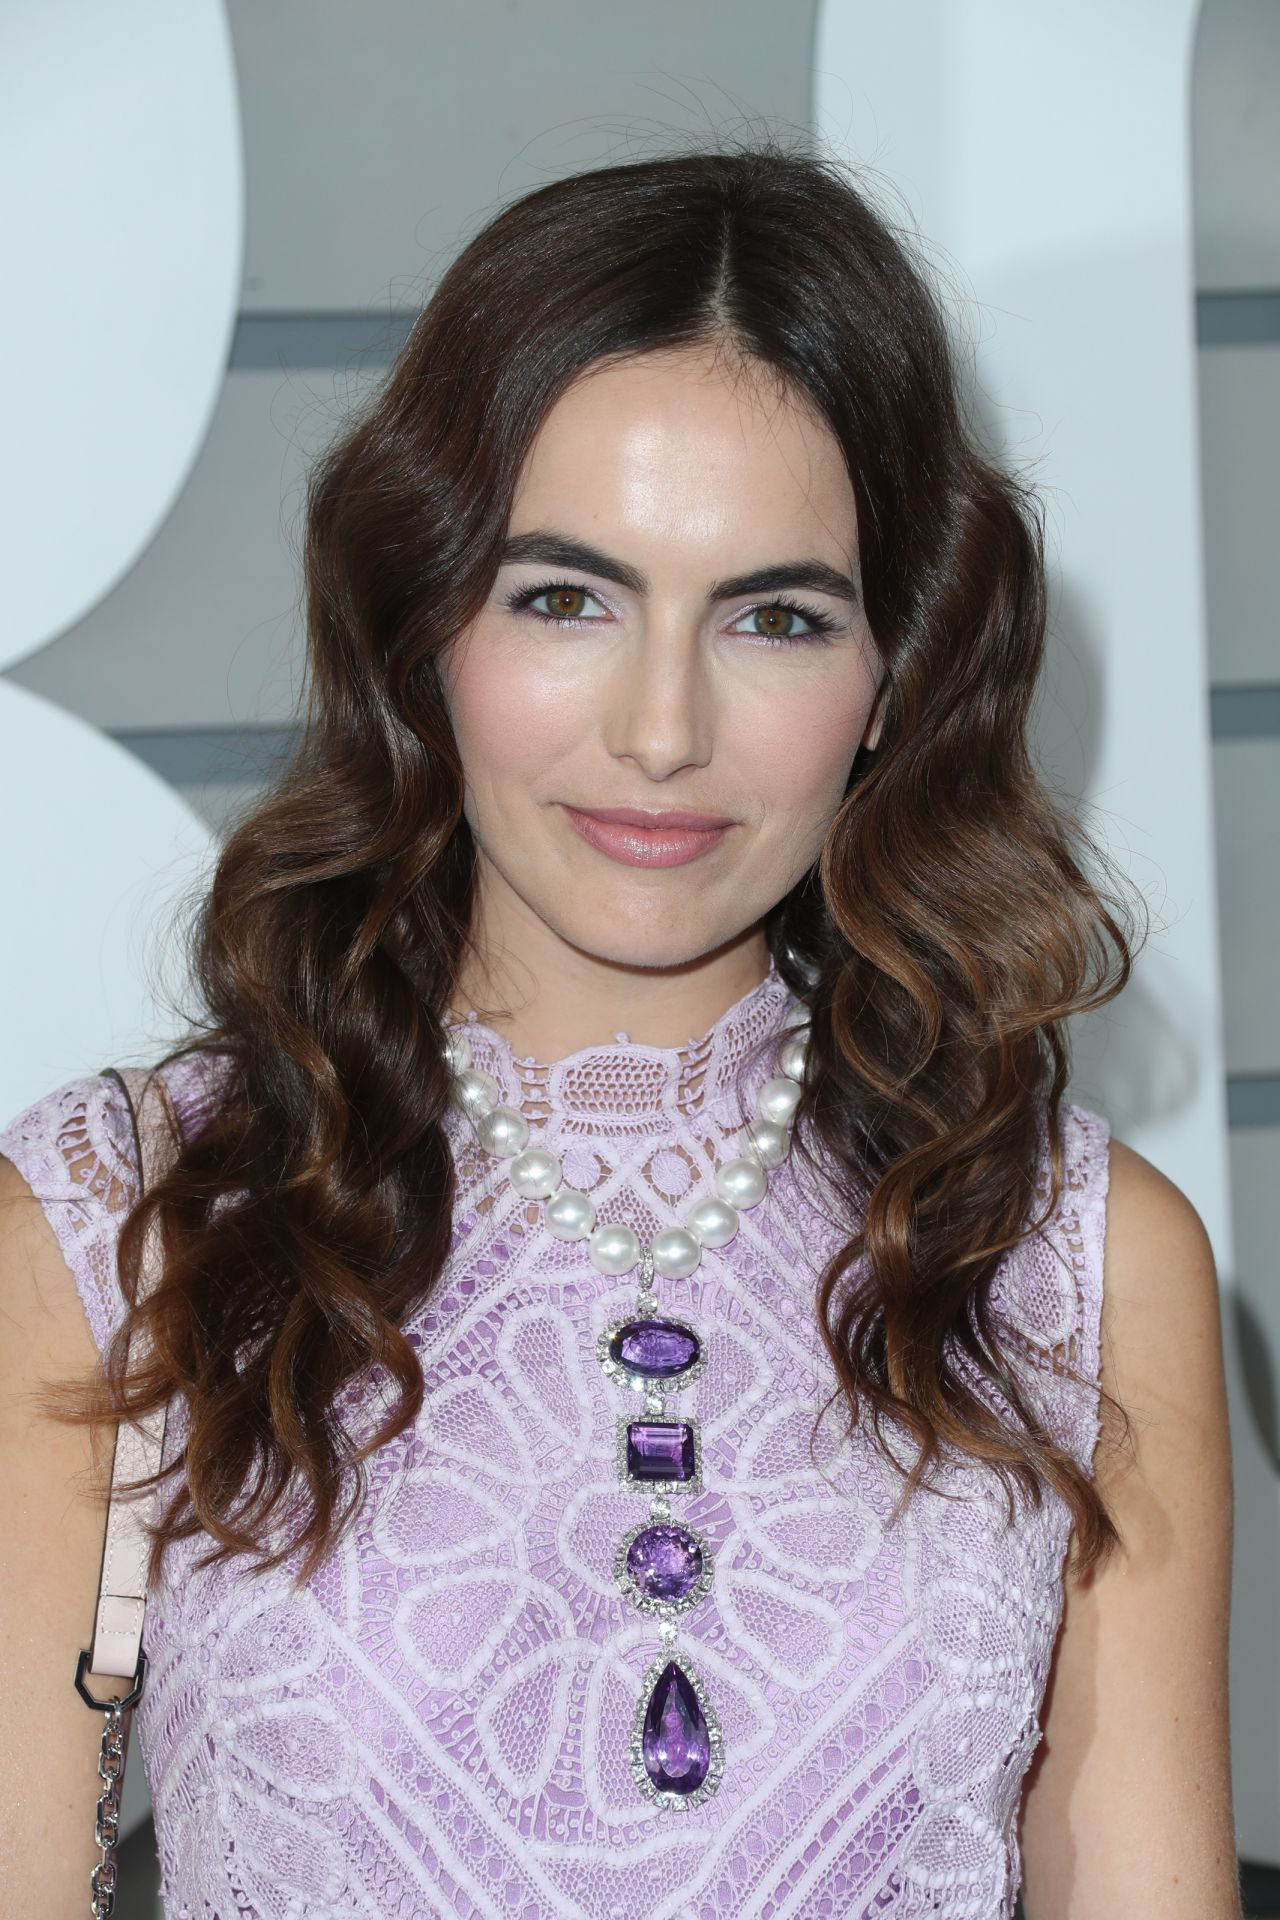 Camilla Belle nudes (83 pictures), pics Tits, Snapchat, lingerie 2017